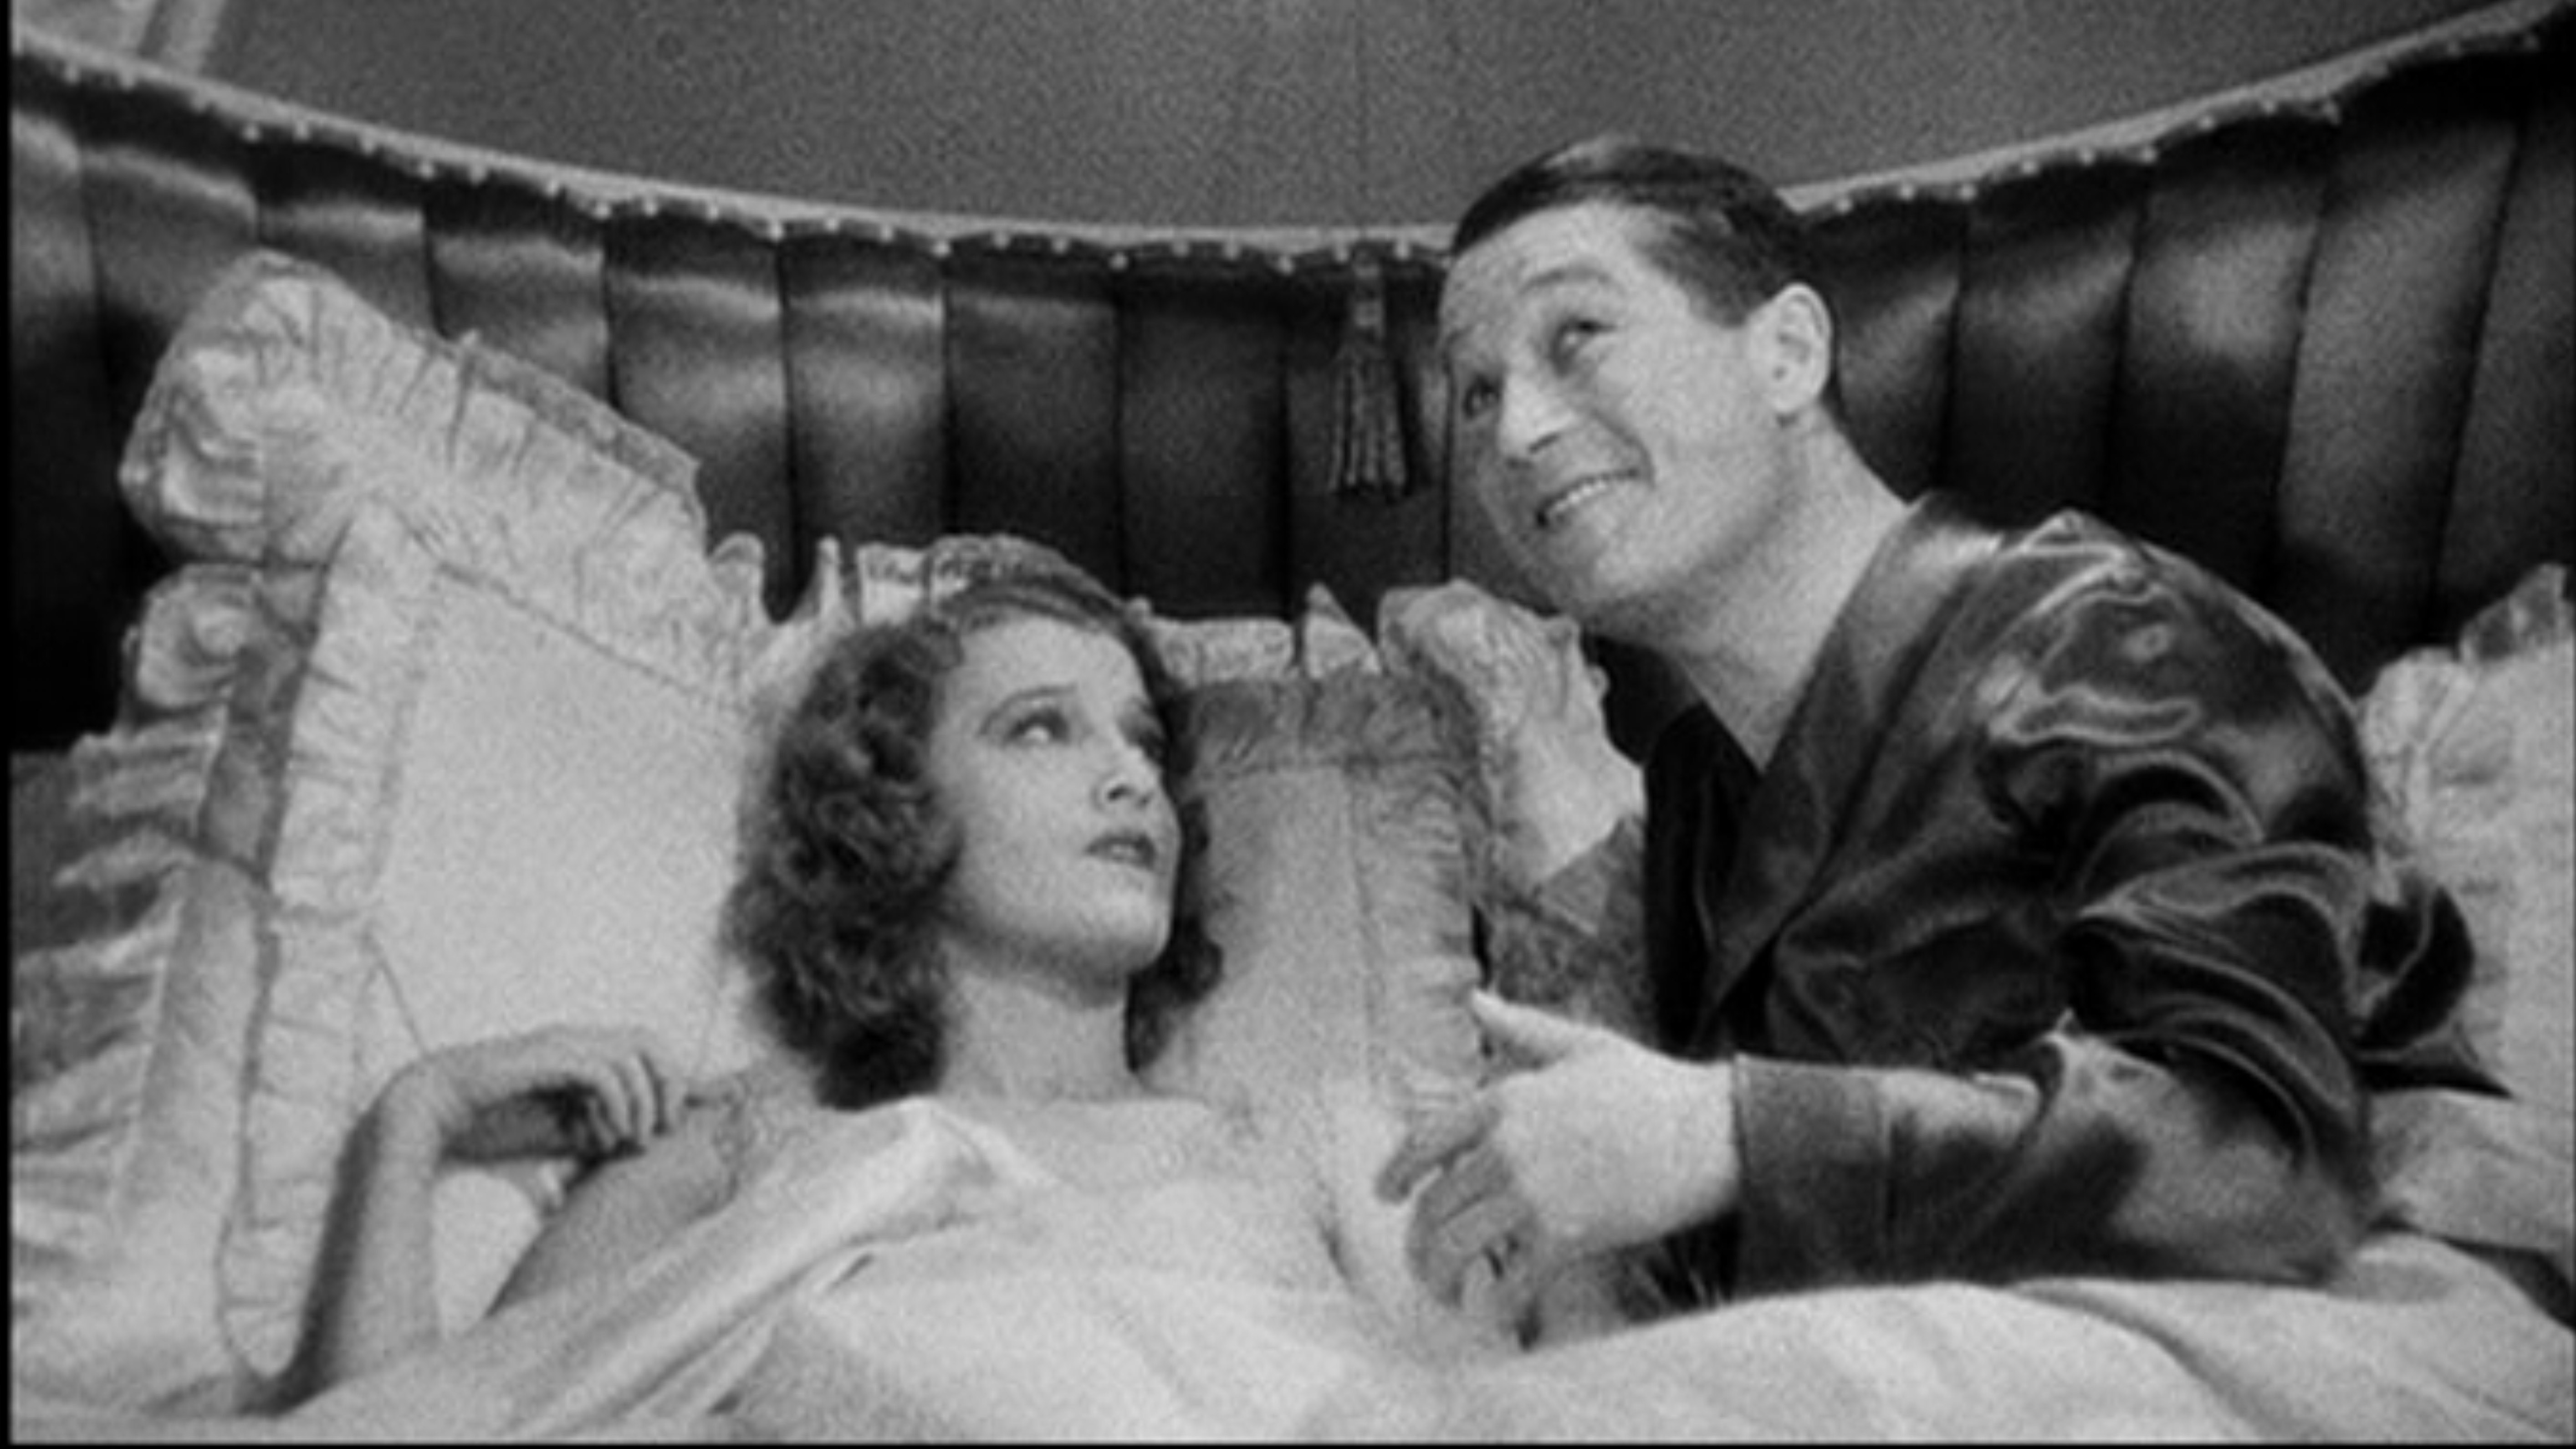 Maurice Chevalier & Jeanette MacDonald in One Hour With You